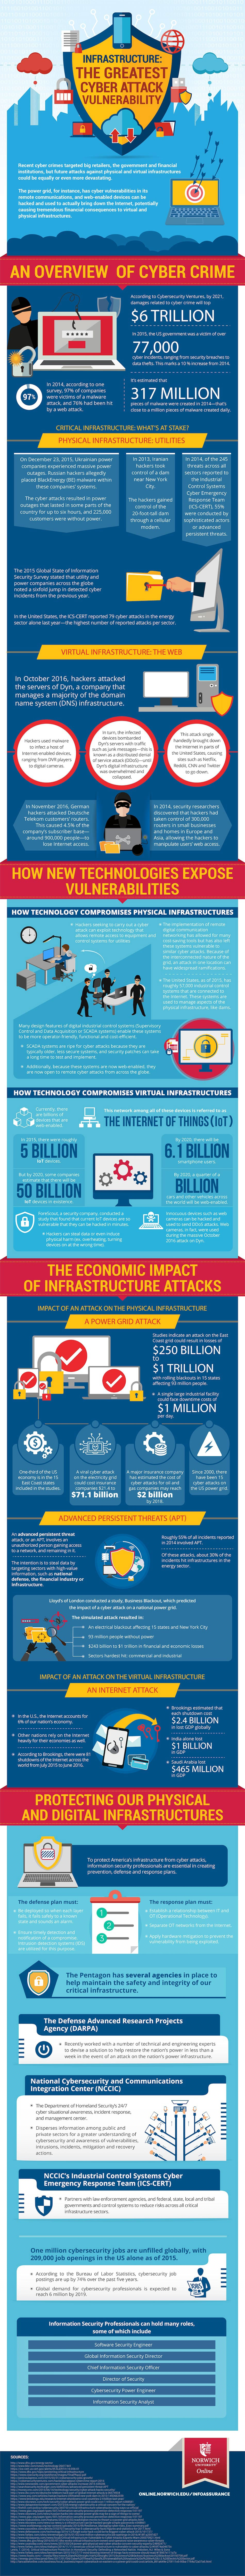 infrastructure cyberattack vulnerability infographic image